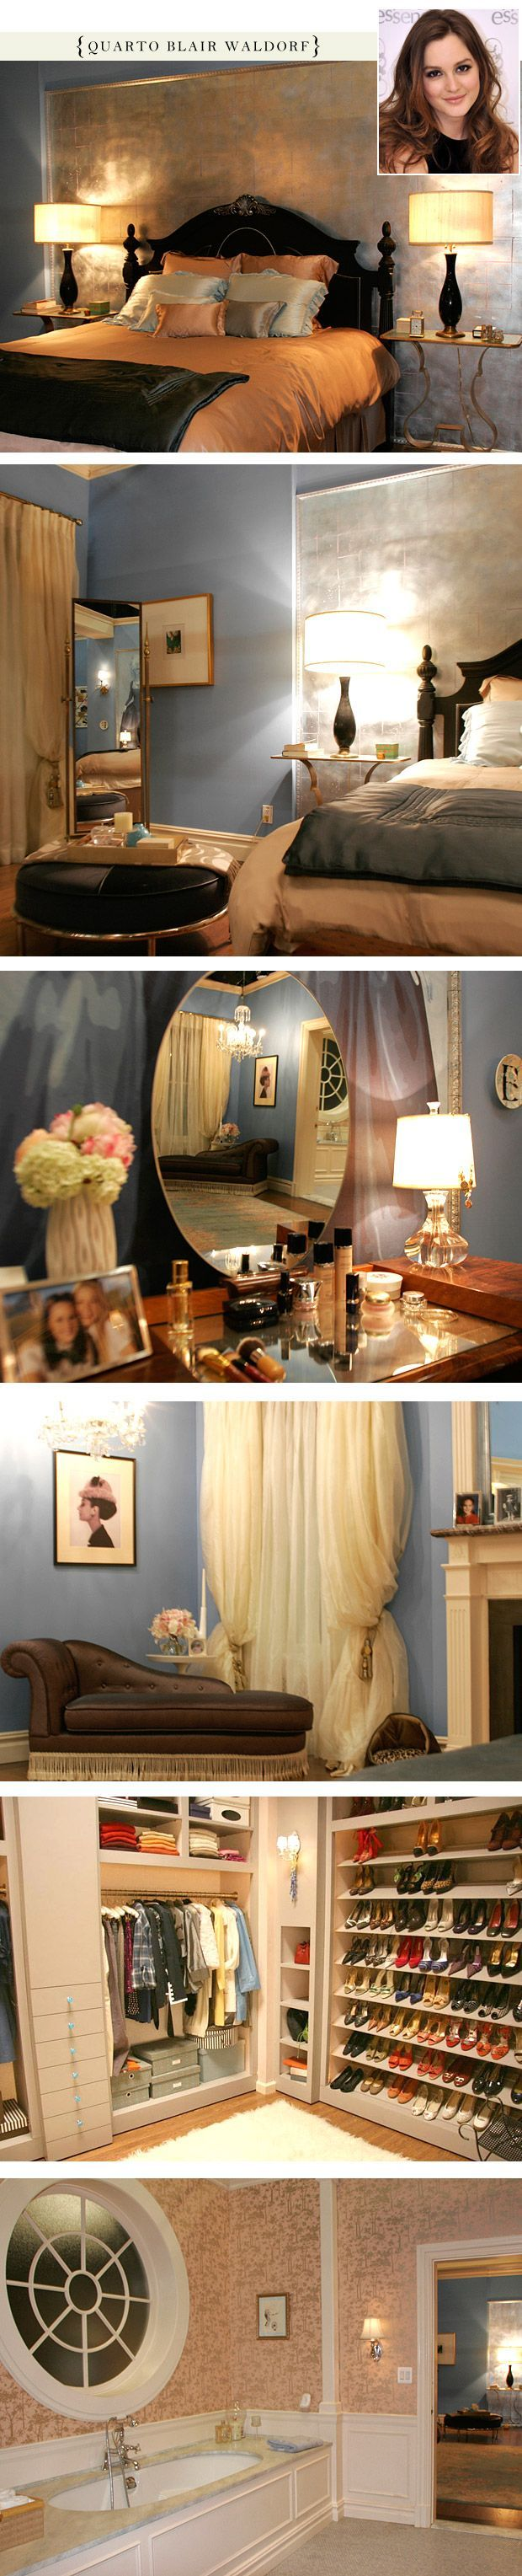 Blair Waldrof's room. Love it. Gossip girl. Blair Waldrof. UES.